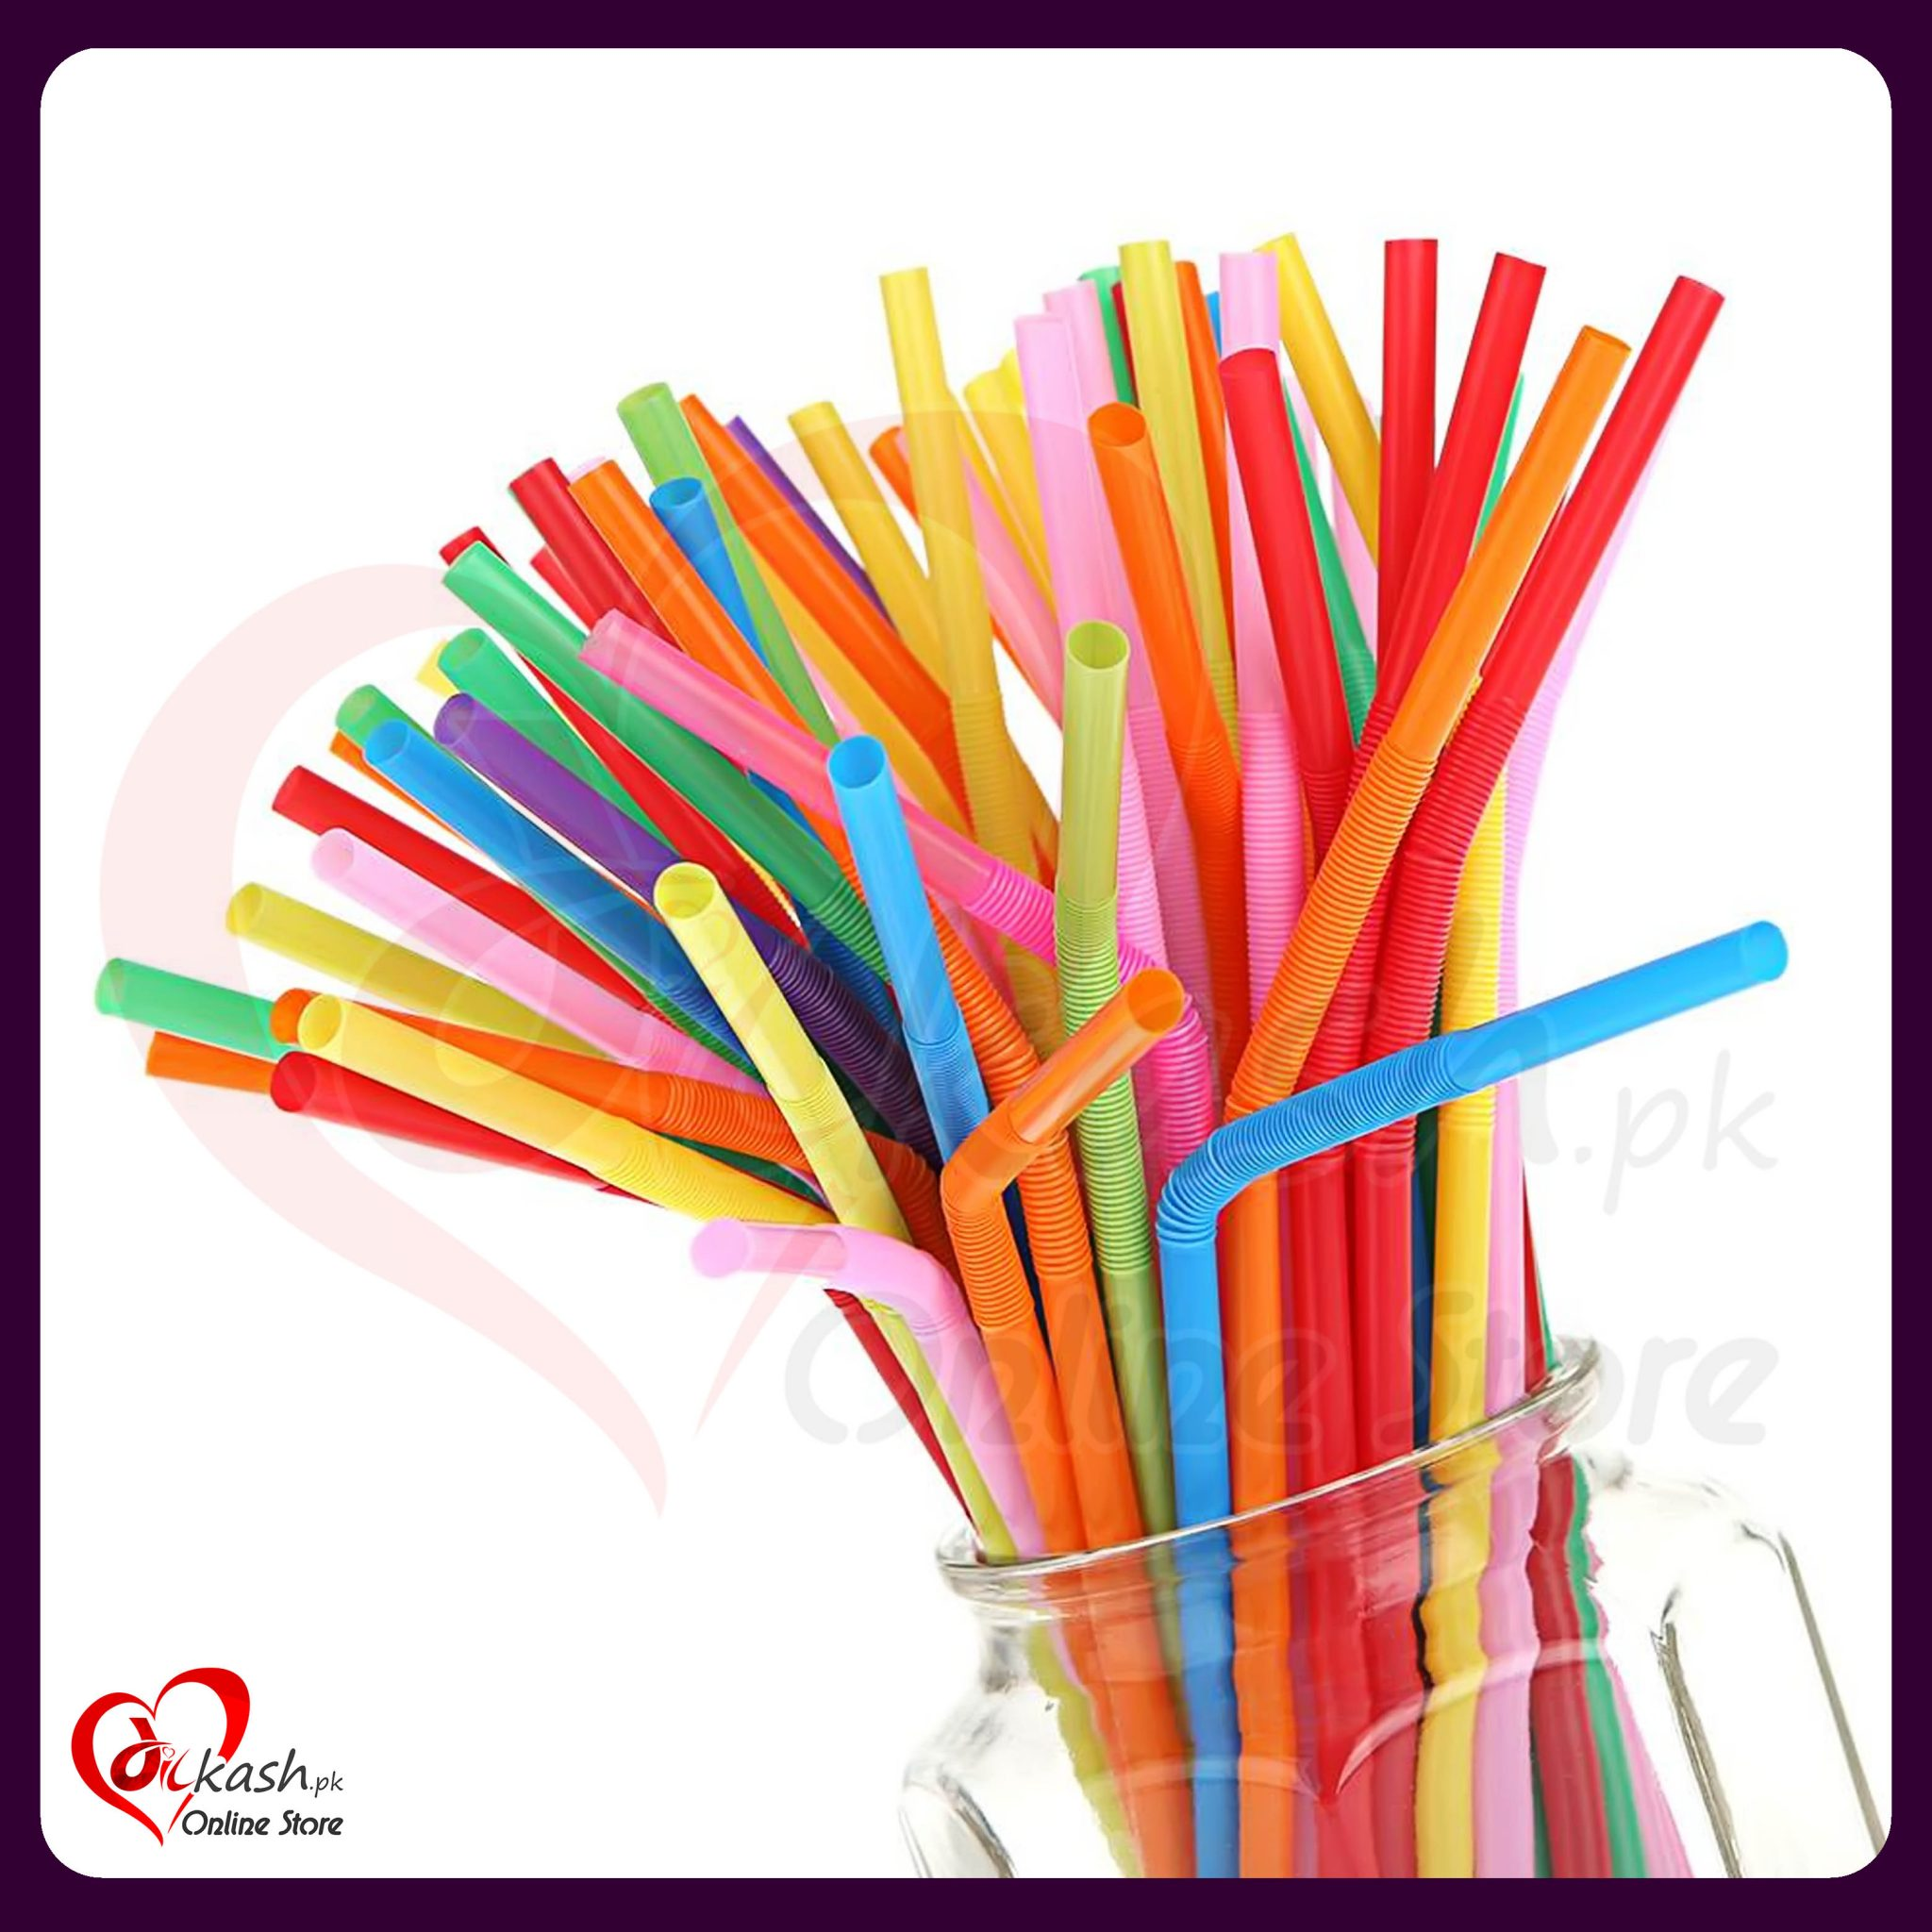 Colorful Flexible Bendable Reusable Straws Dilkash Online Store